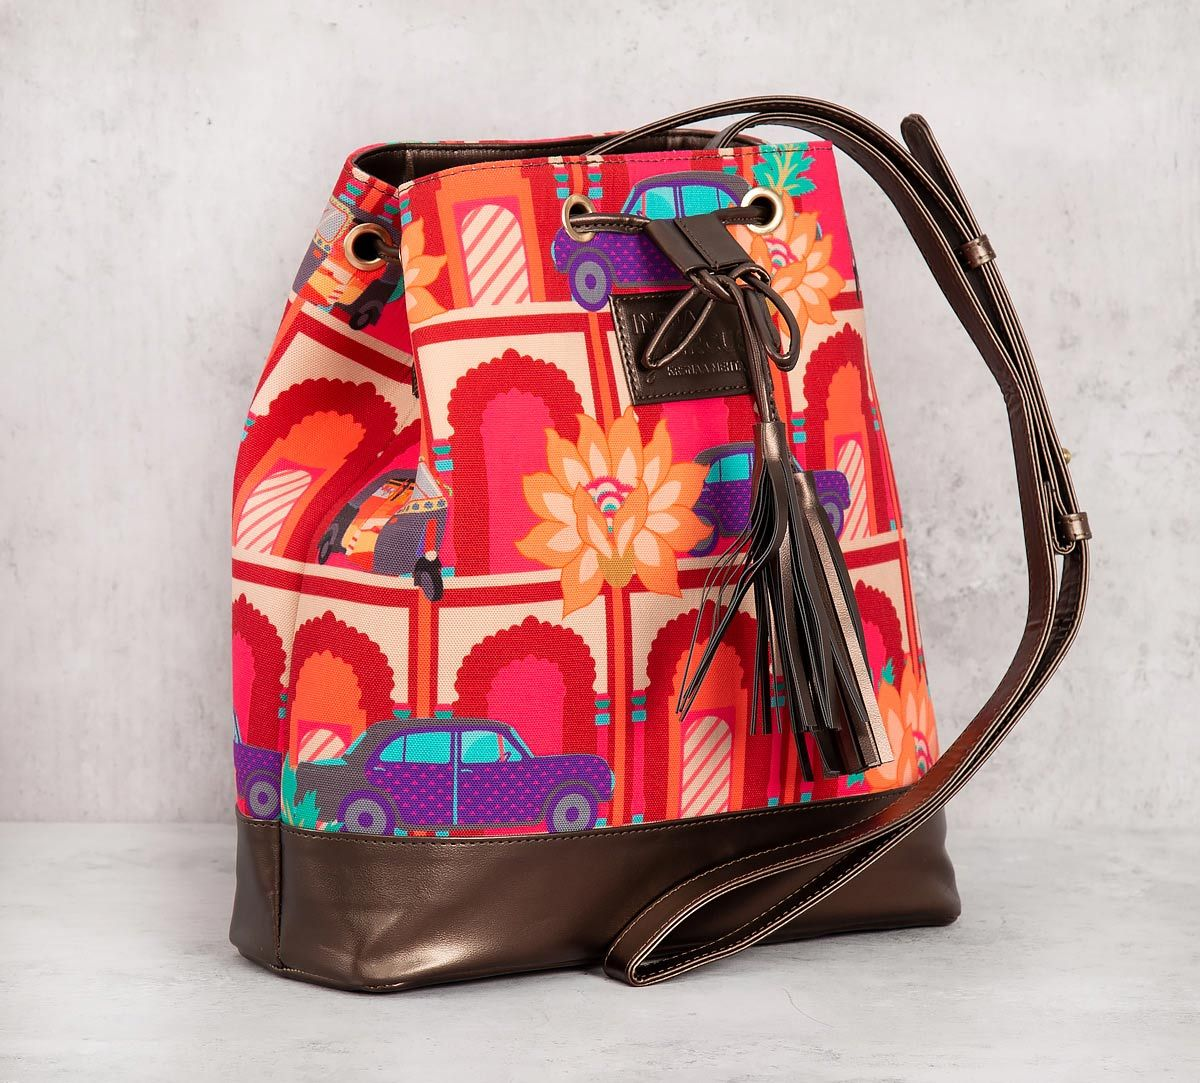 India Circus Mughal Concierge Hobo Bag